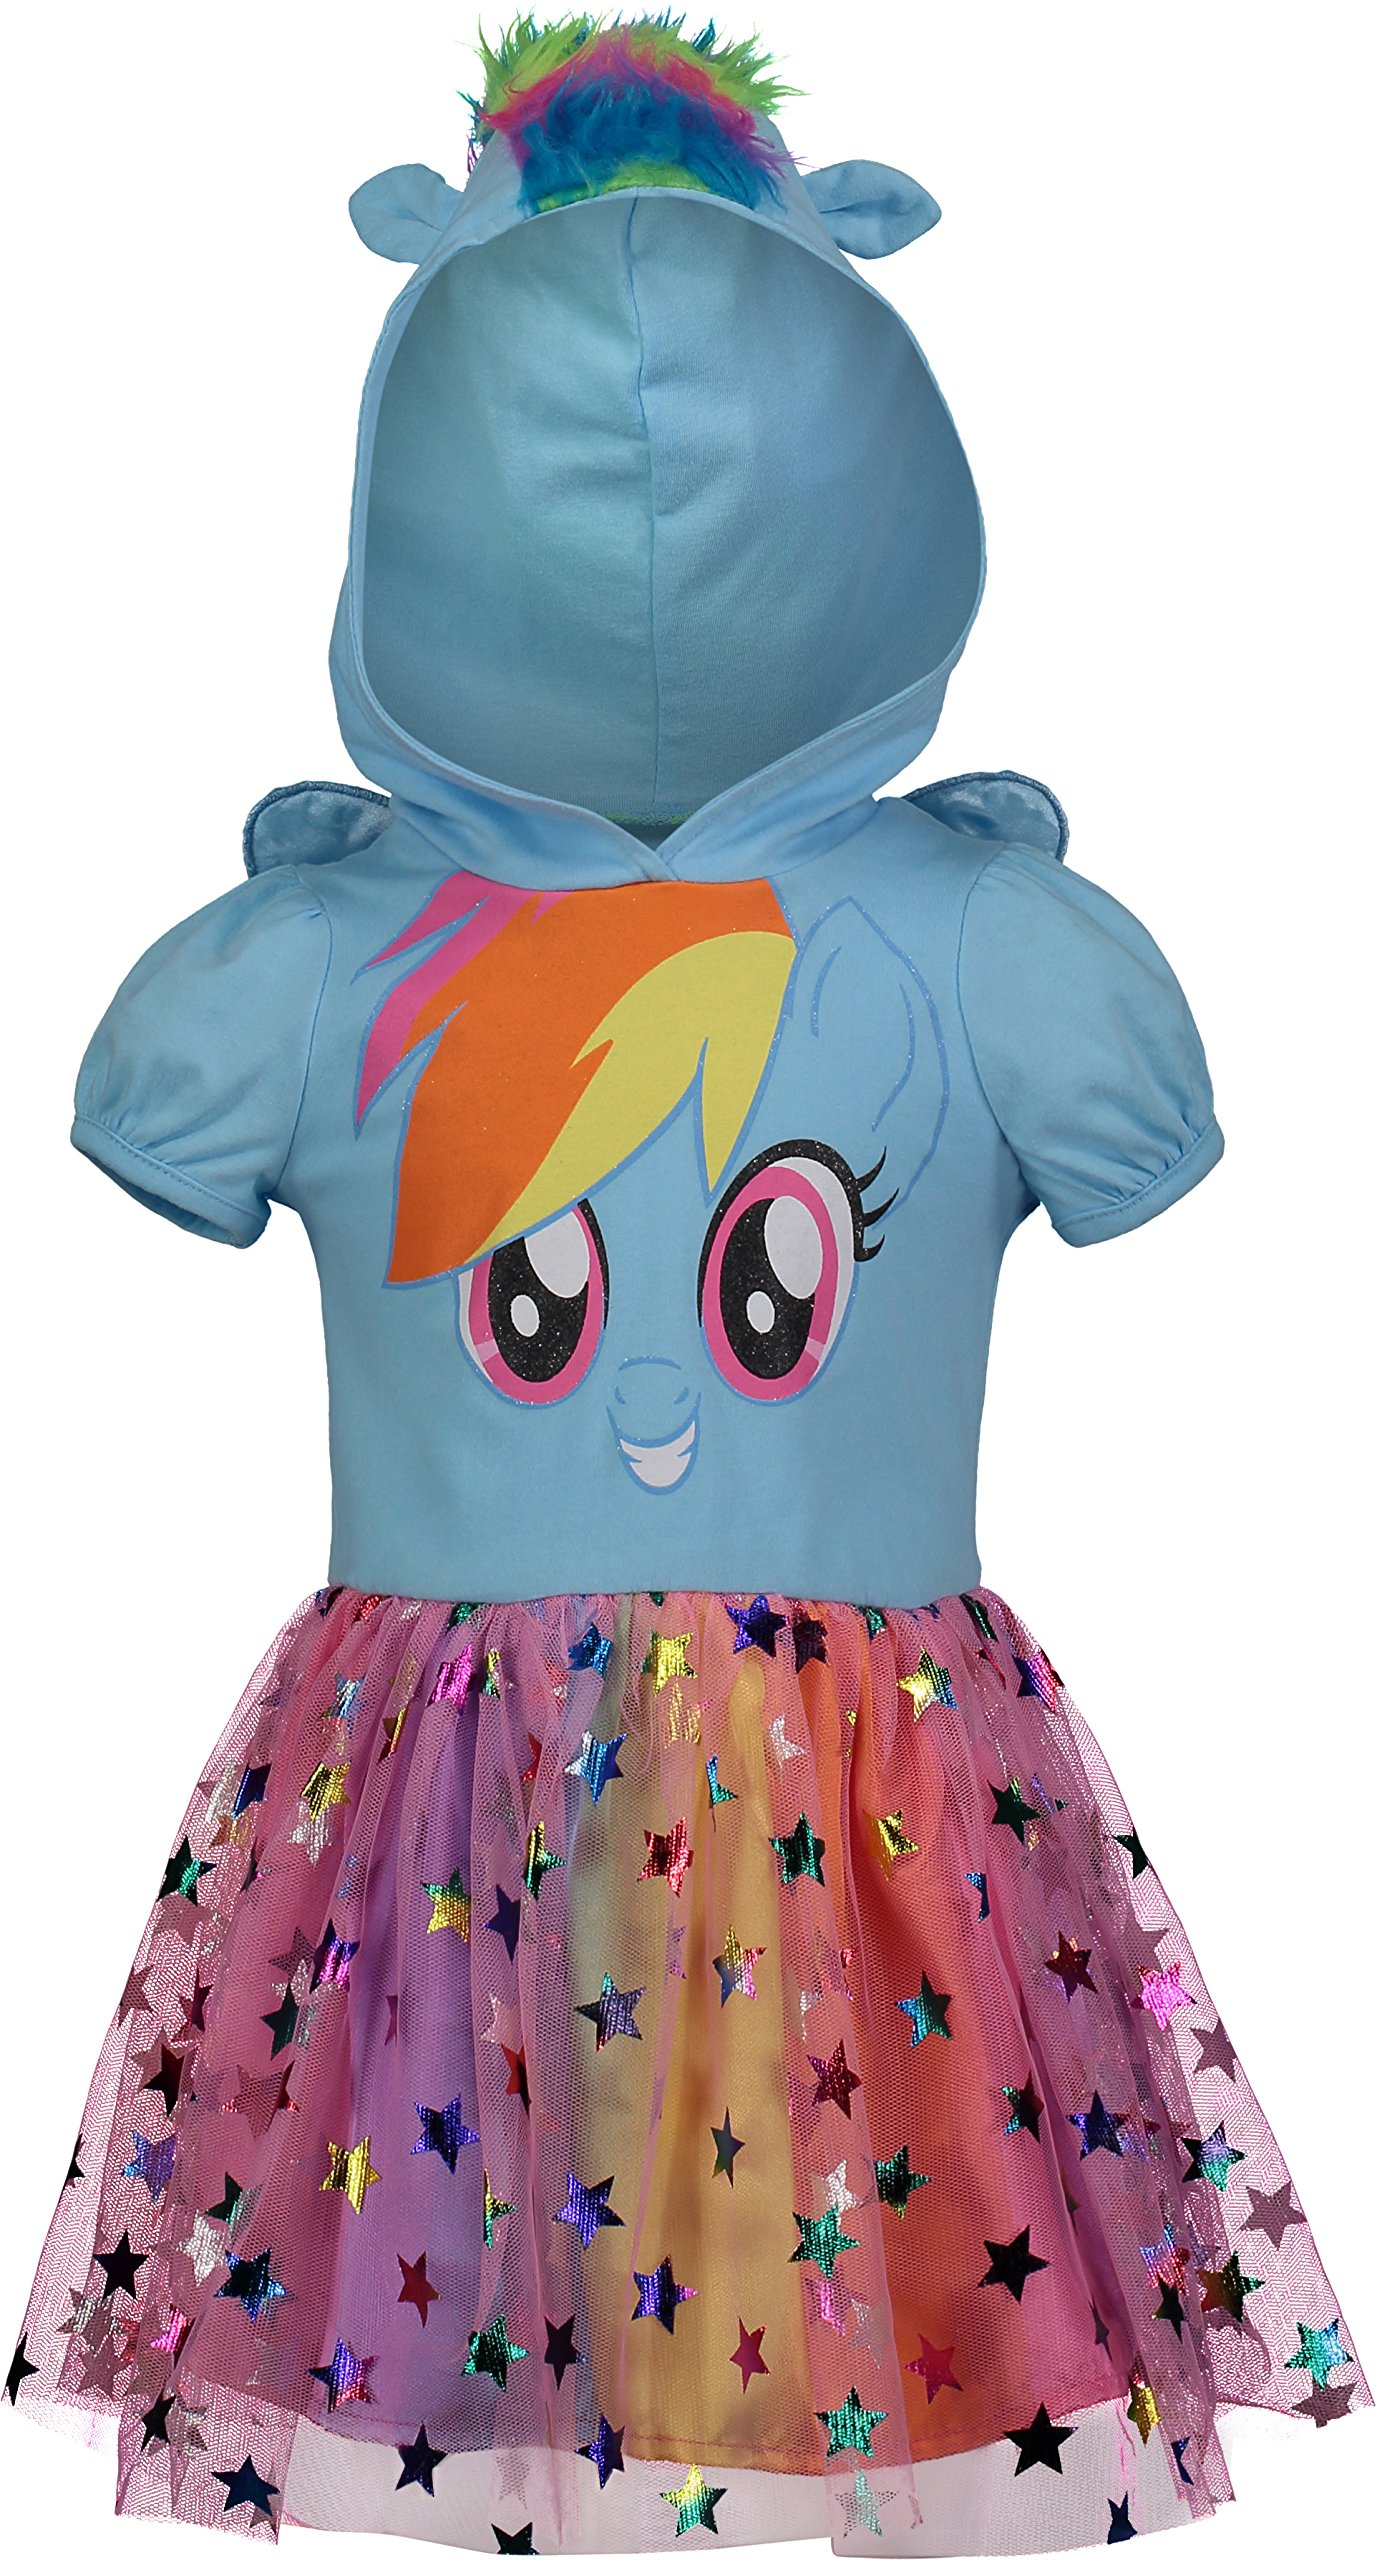 My Little Pony Rainbow Dash Toddler Girls' Costume Dress with Hood and Wings, Blue (5T)